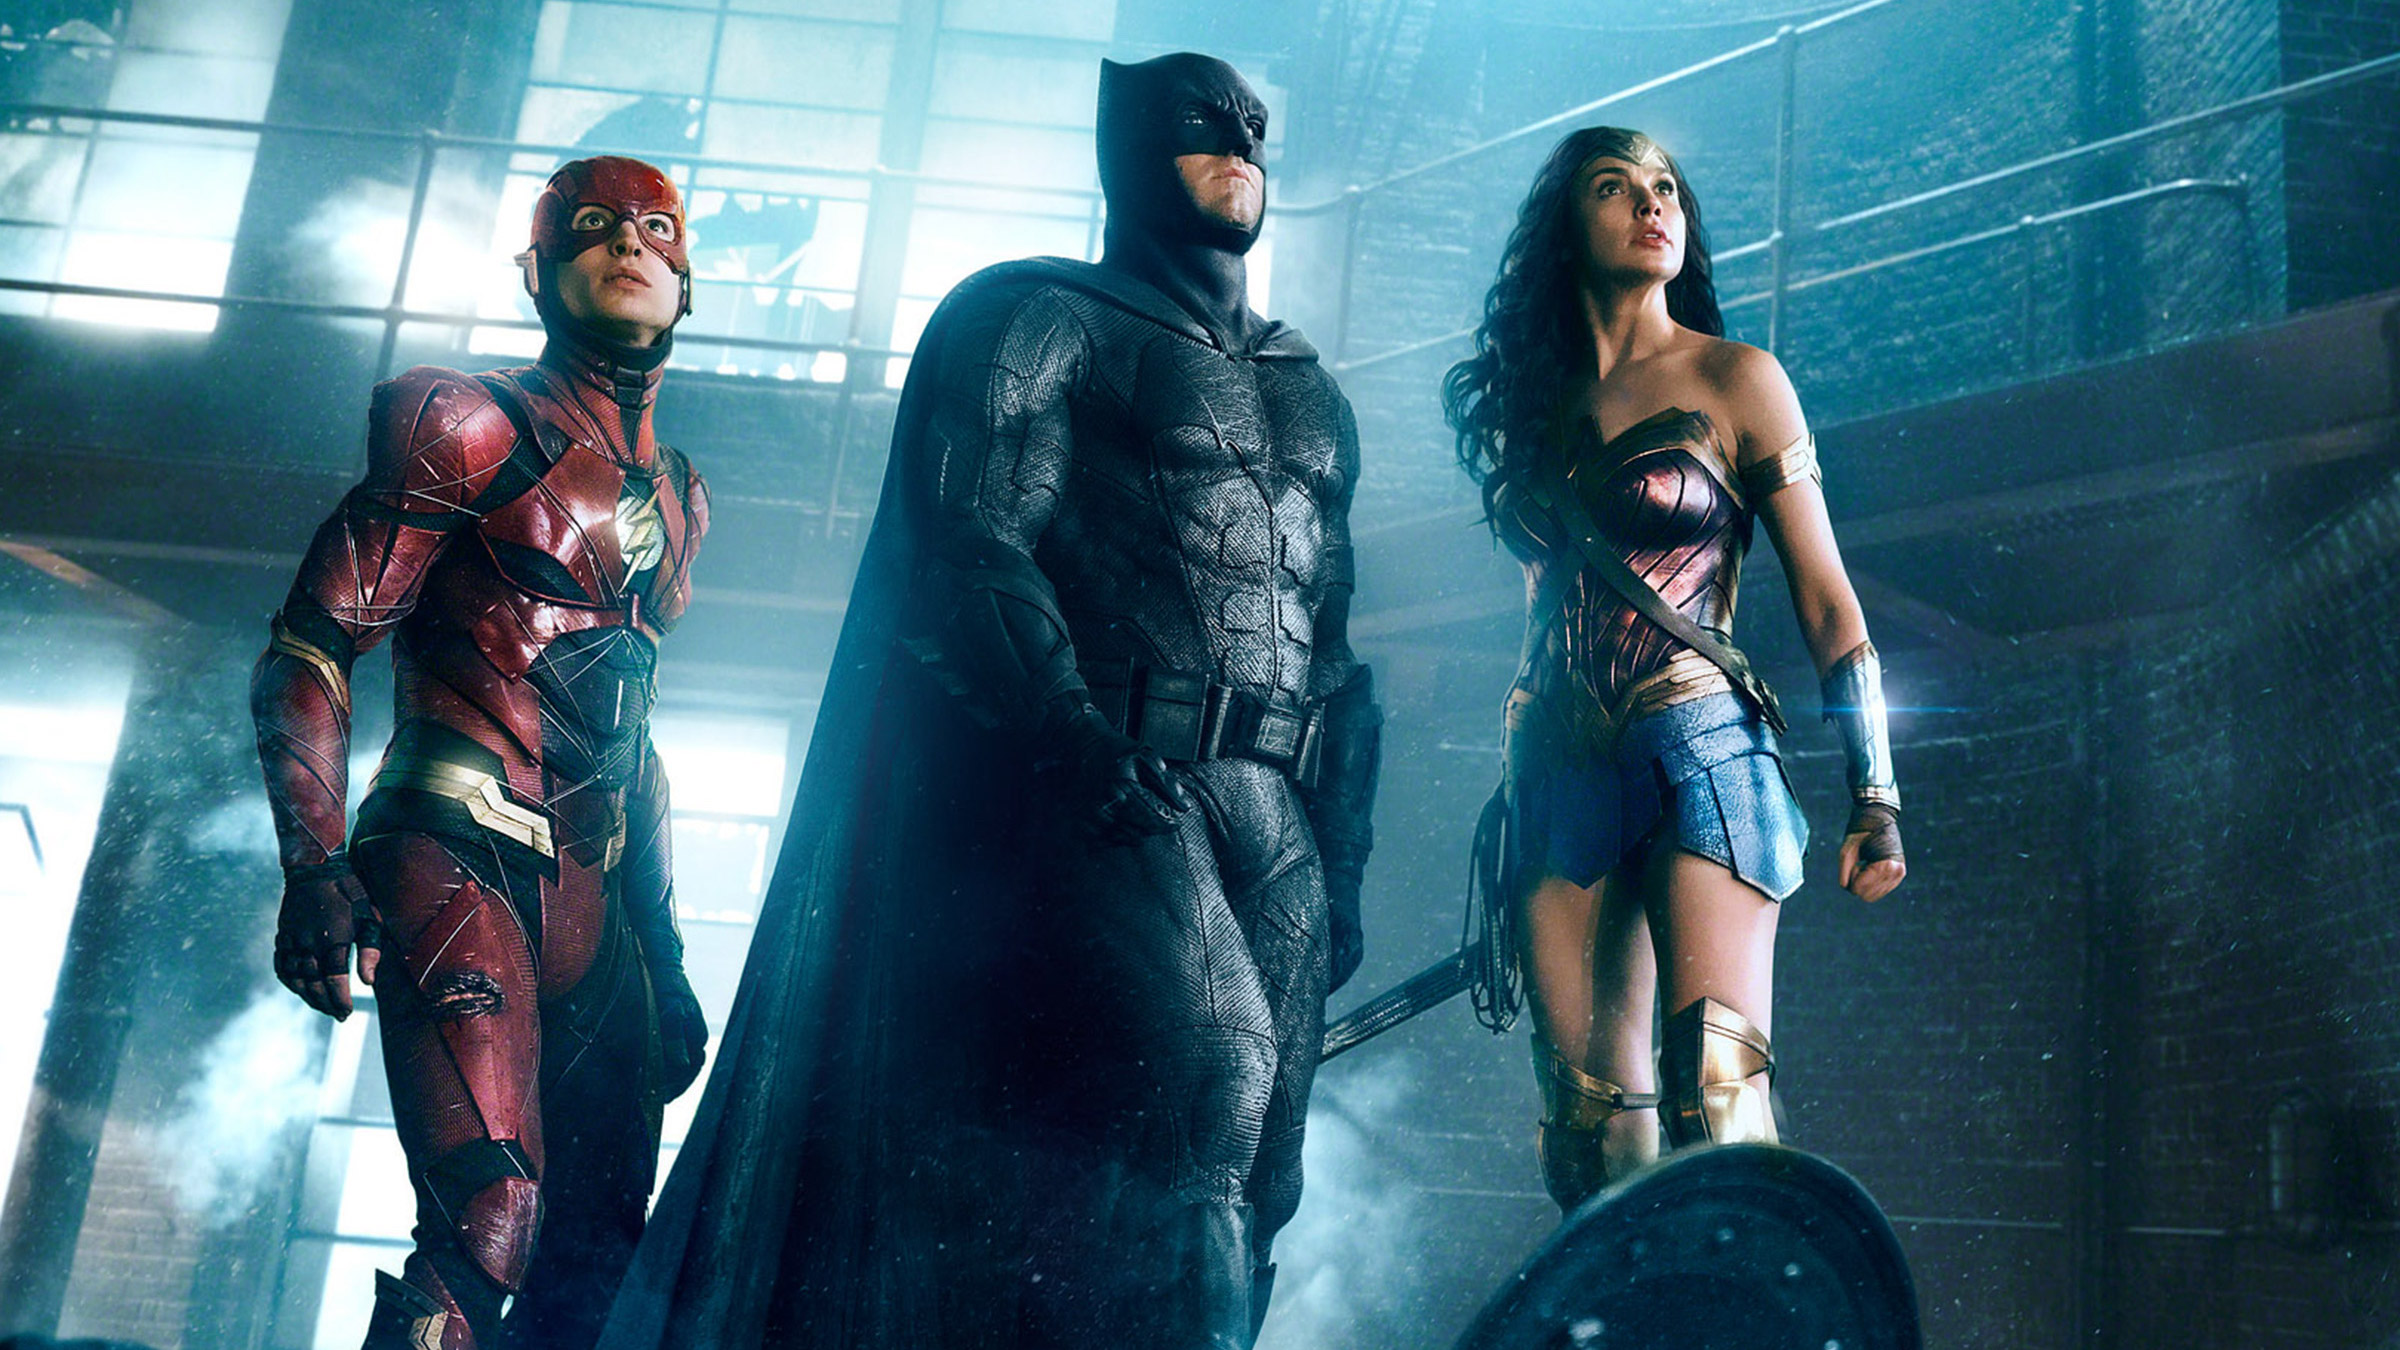 Justice League Batman, Wonder Woman, Flash